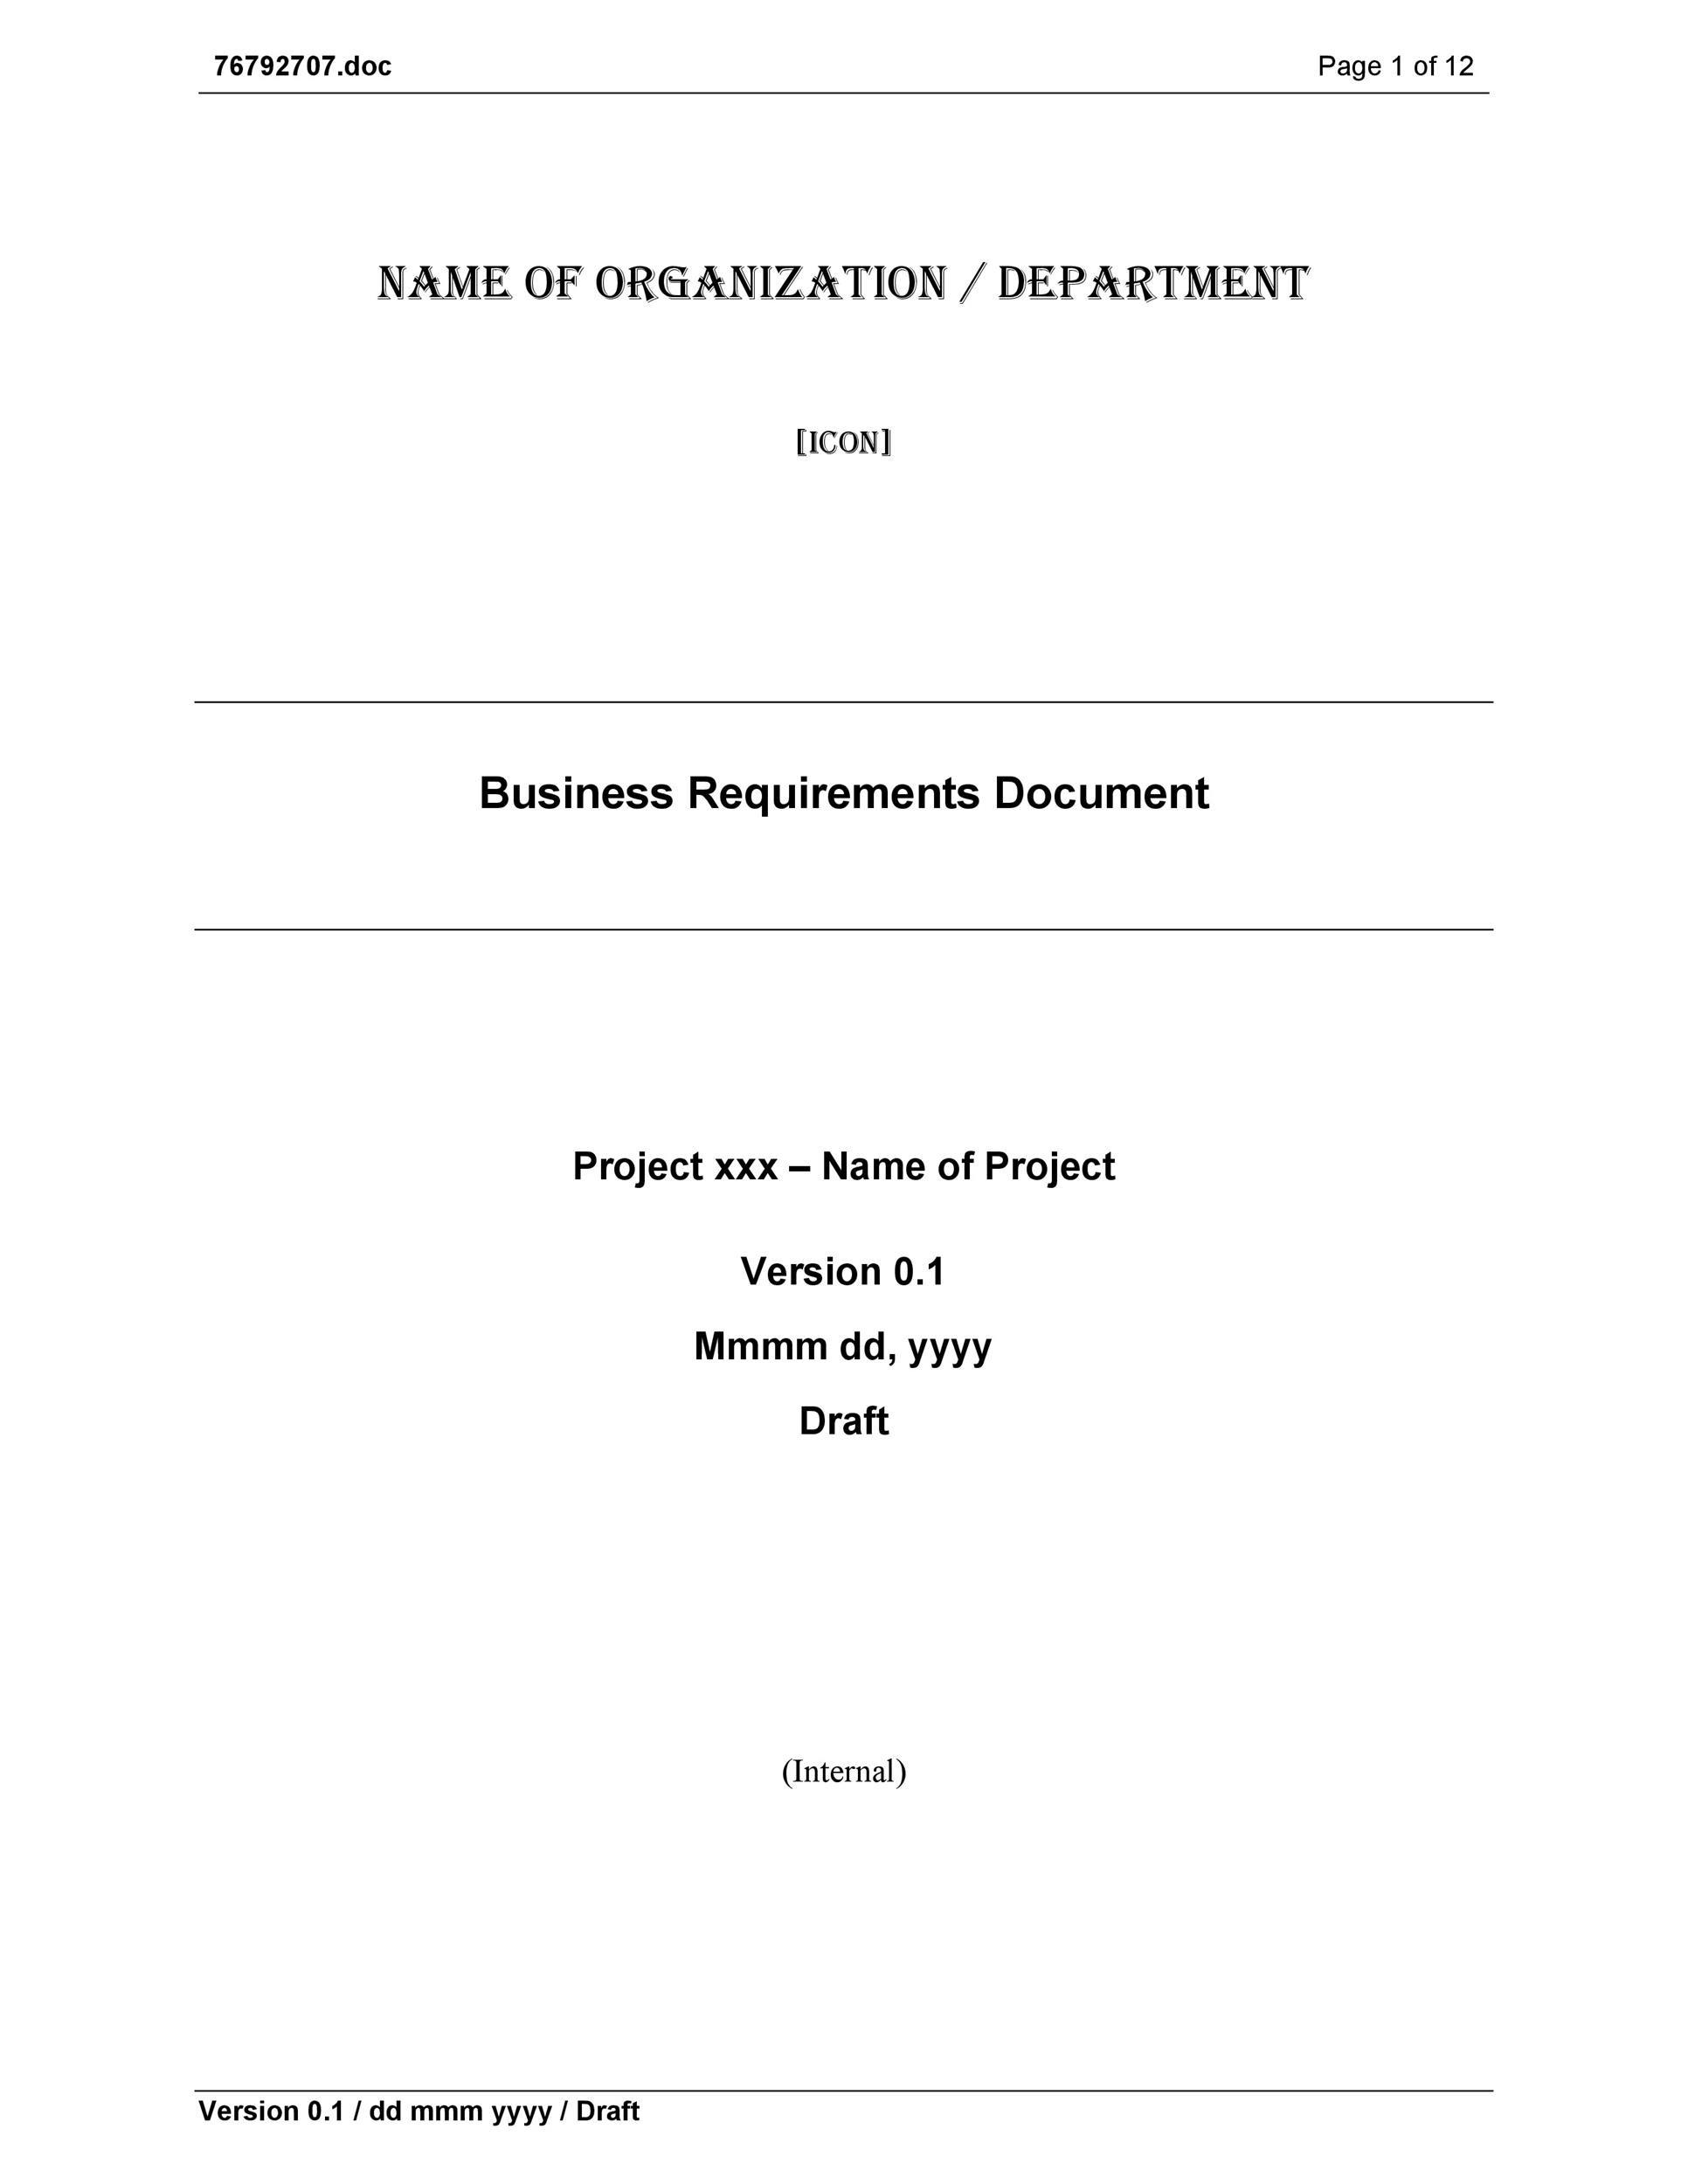 Marvelous Free Business Requirements Document Template 24